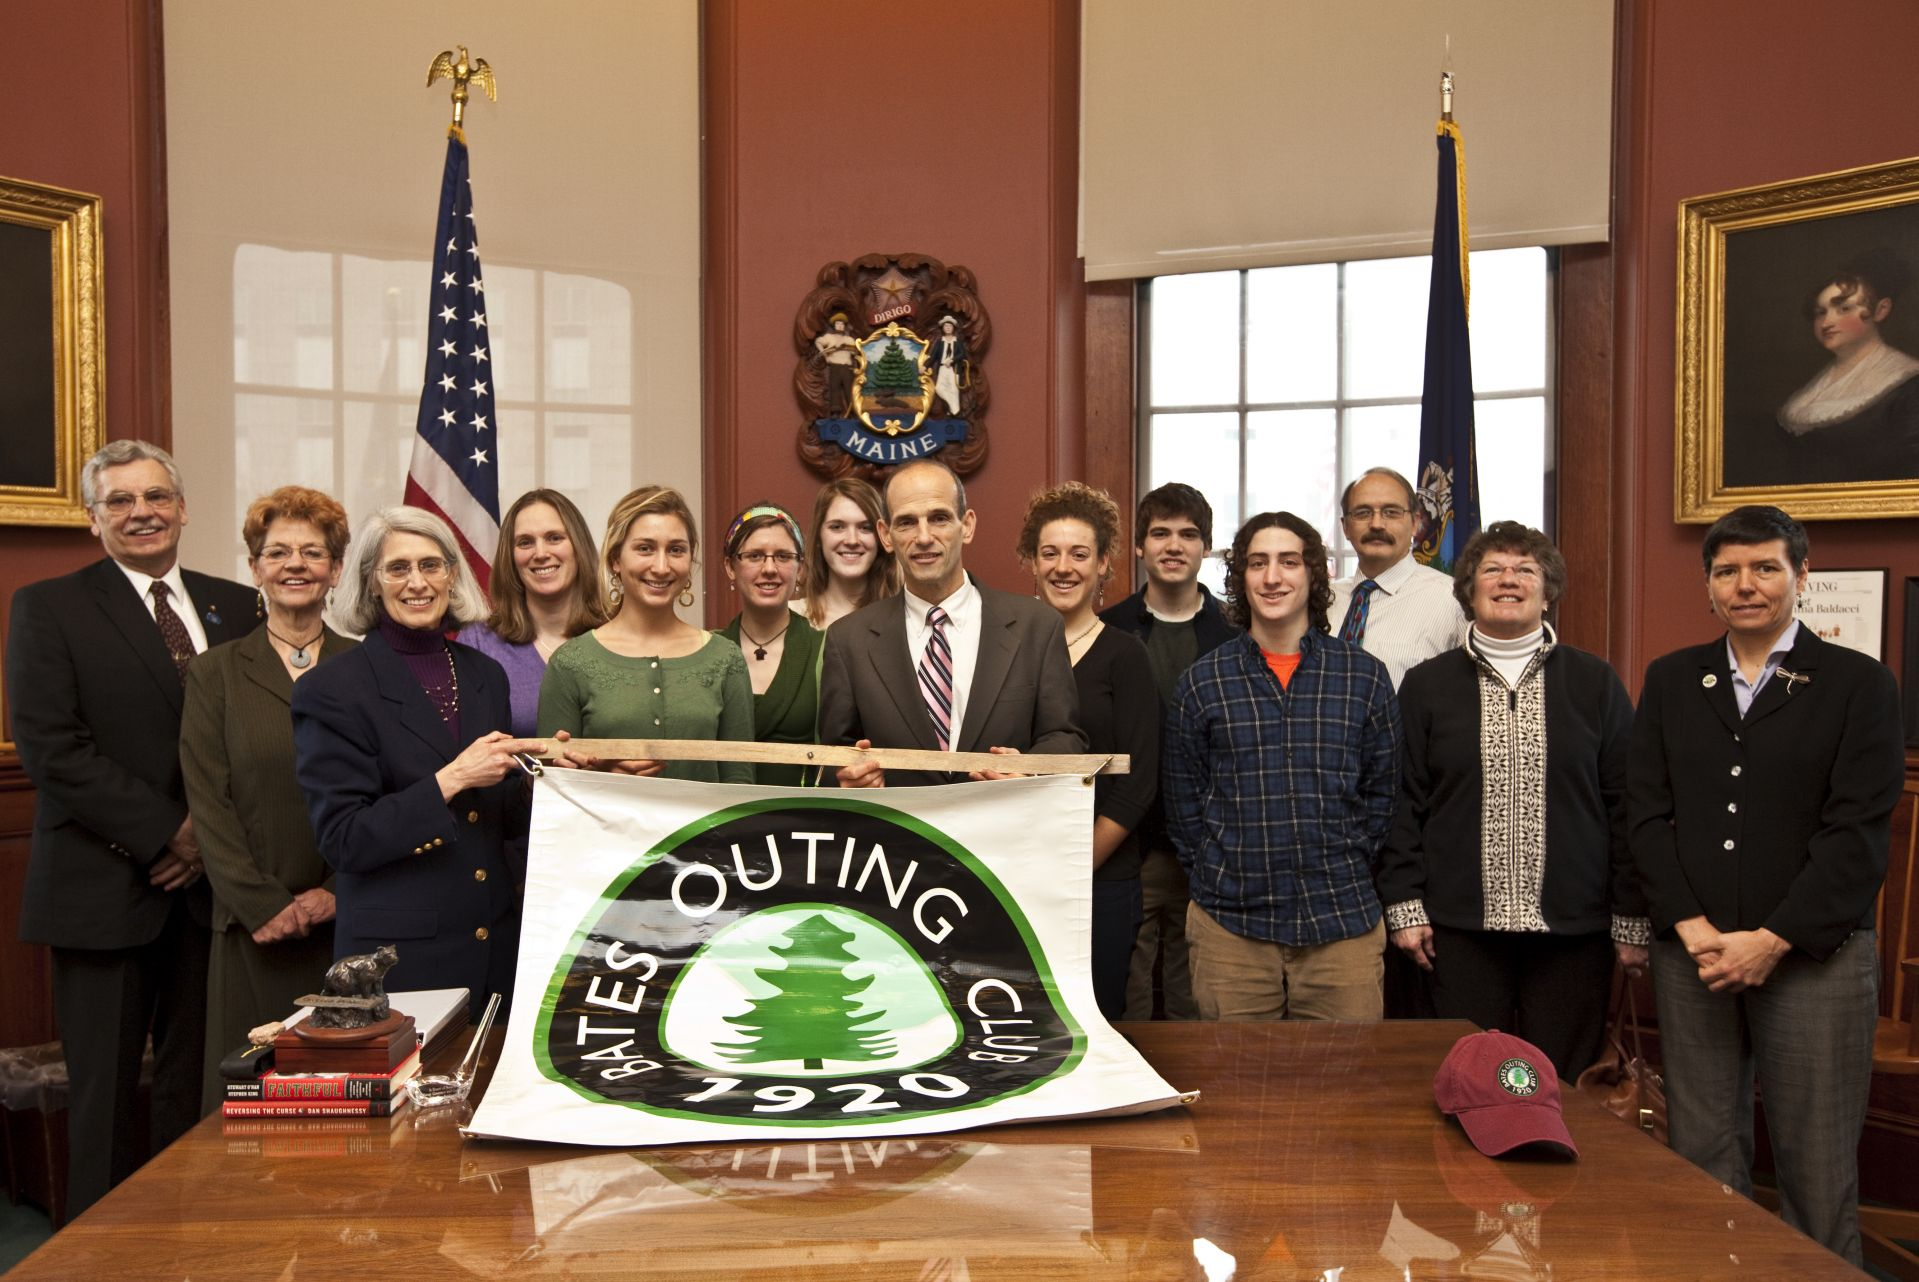 In 2010, Maine Gov. John Baldacci helps the Bates Outing Club celebrate the 90th anniversary of its 1920 founding. From left, Rep. Mike Lajoie (D-Lewiston); Sen. Margaret Craven (D-Lewiston); Rep. Margaret Rotundo (D-Lewiston); Leah Weidmann Gailey '97, Alumni and Parent Programs; Rachel Edwards '11; Ursula Sandstrom '13; Kellen MacFadyen '12, vice president, Bates Outing Club; Gov. Baldacci; JeanMarie Gossard '10, president, Bates Outing Club; Gardiner Nardini '12; Alex Friedman '12; Ken Spalding '73, past president, Bates Outing Club; Judy Marden '66, adviser, Bates Outing Club; Eliza Townsend, acting commissioner, State Department of Conservation. (Phyllis Graber Jensen/Bates College)